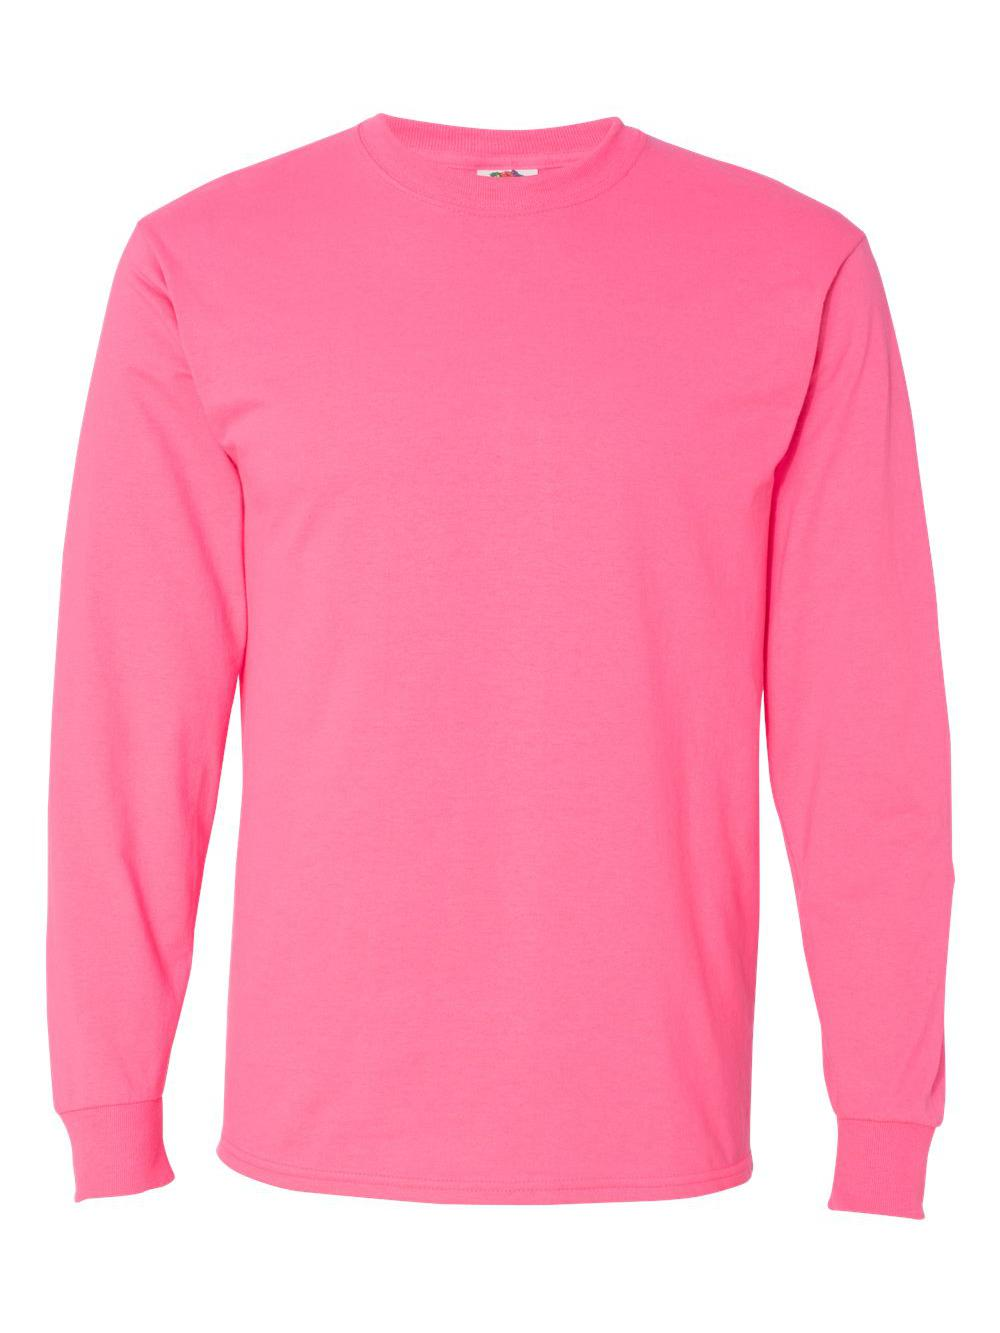 Fruit-of-the-Loom-HD-Cotton-Long-Sleeve-T-Shirt-4930R thumbnail 51